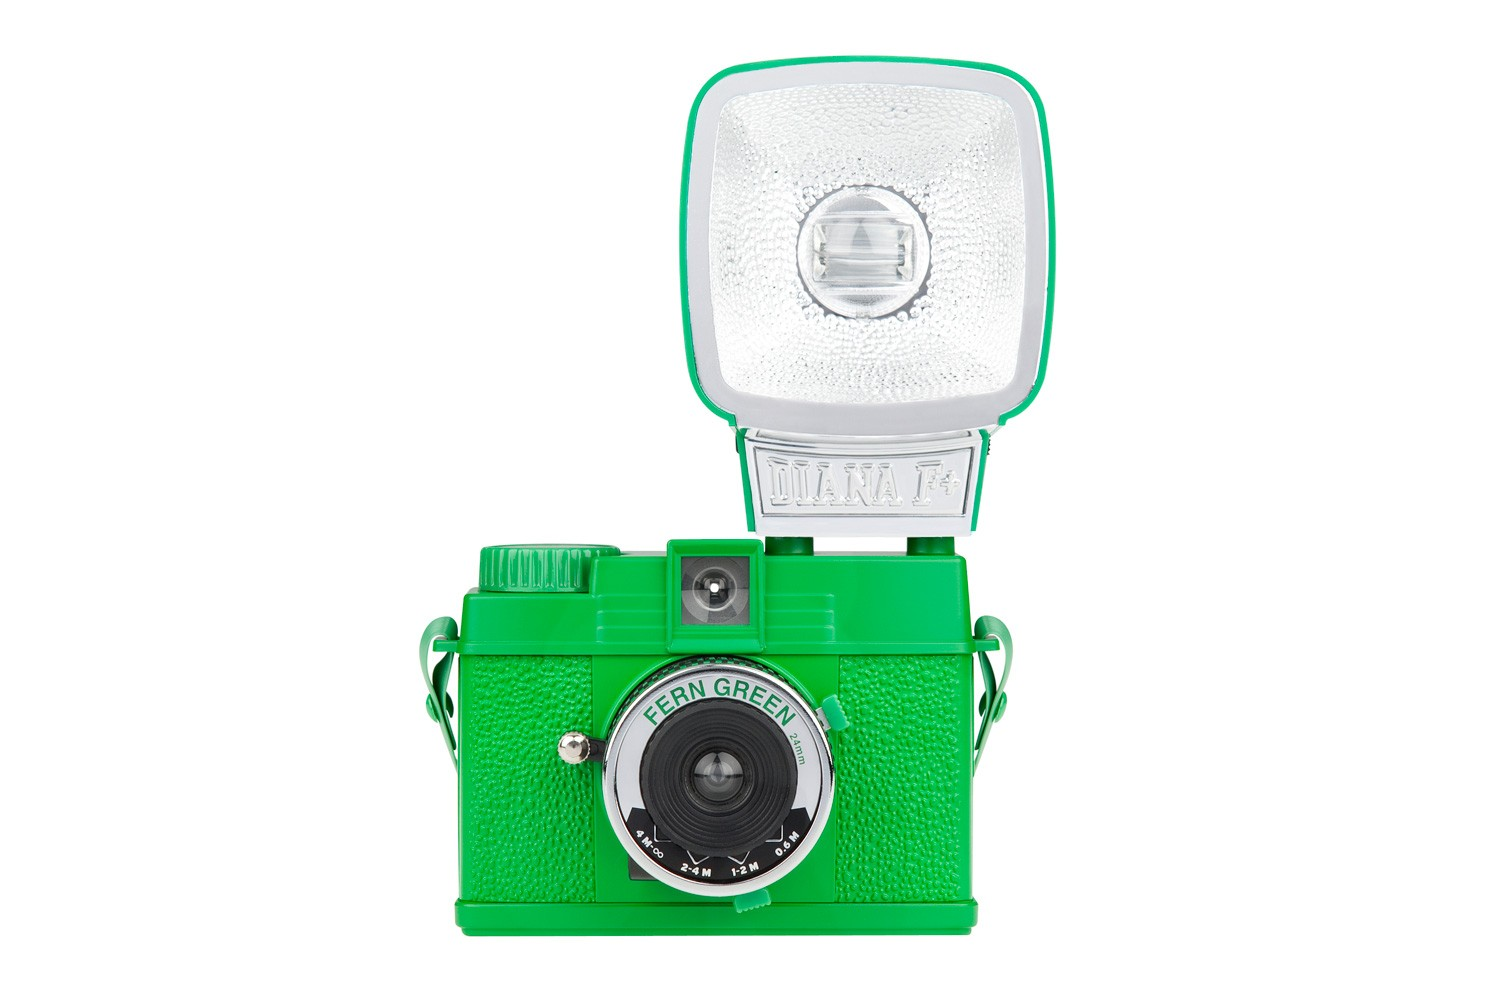 Diana Mini Camera And Flash Fern Green Edition